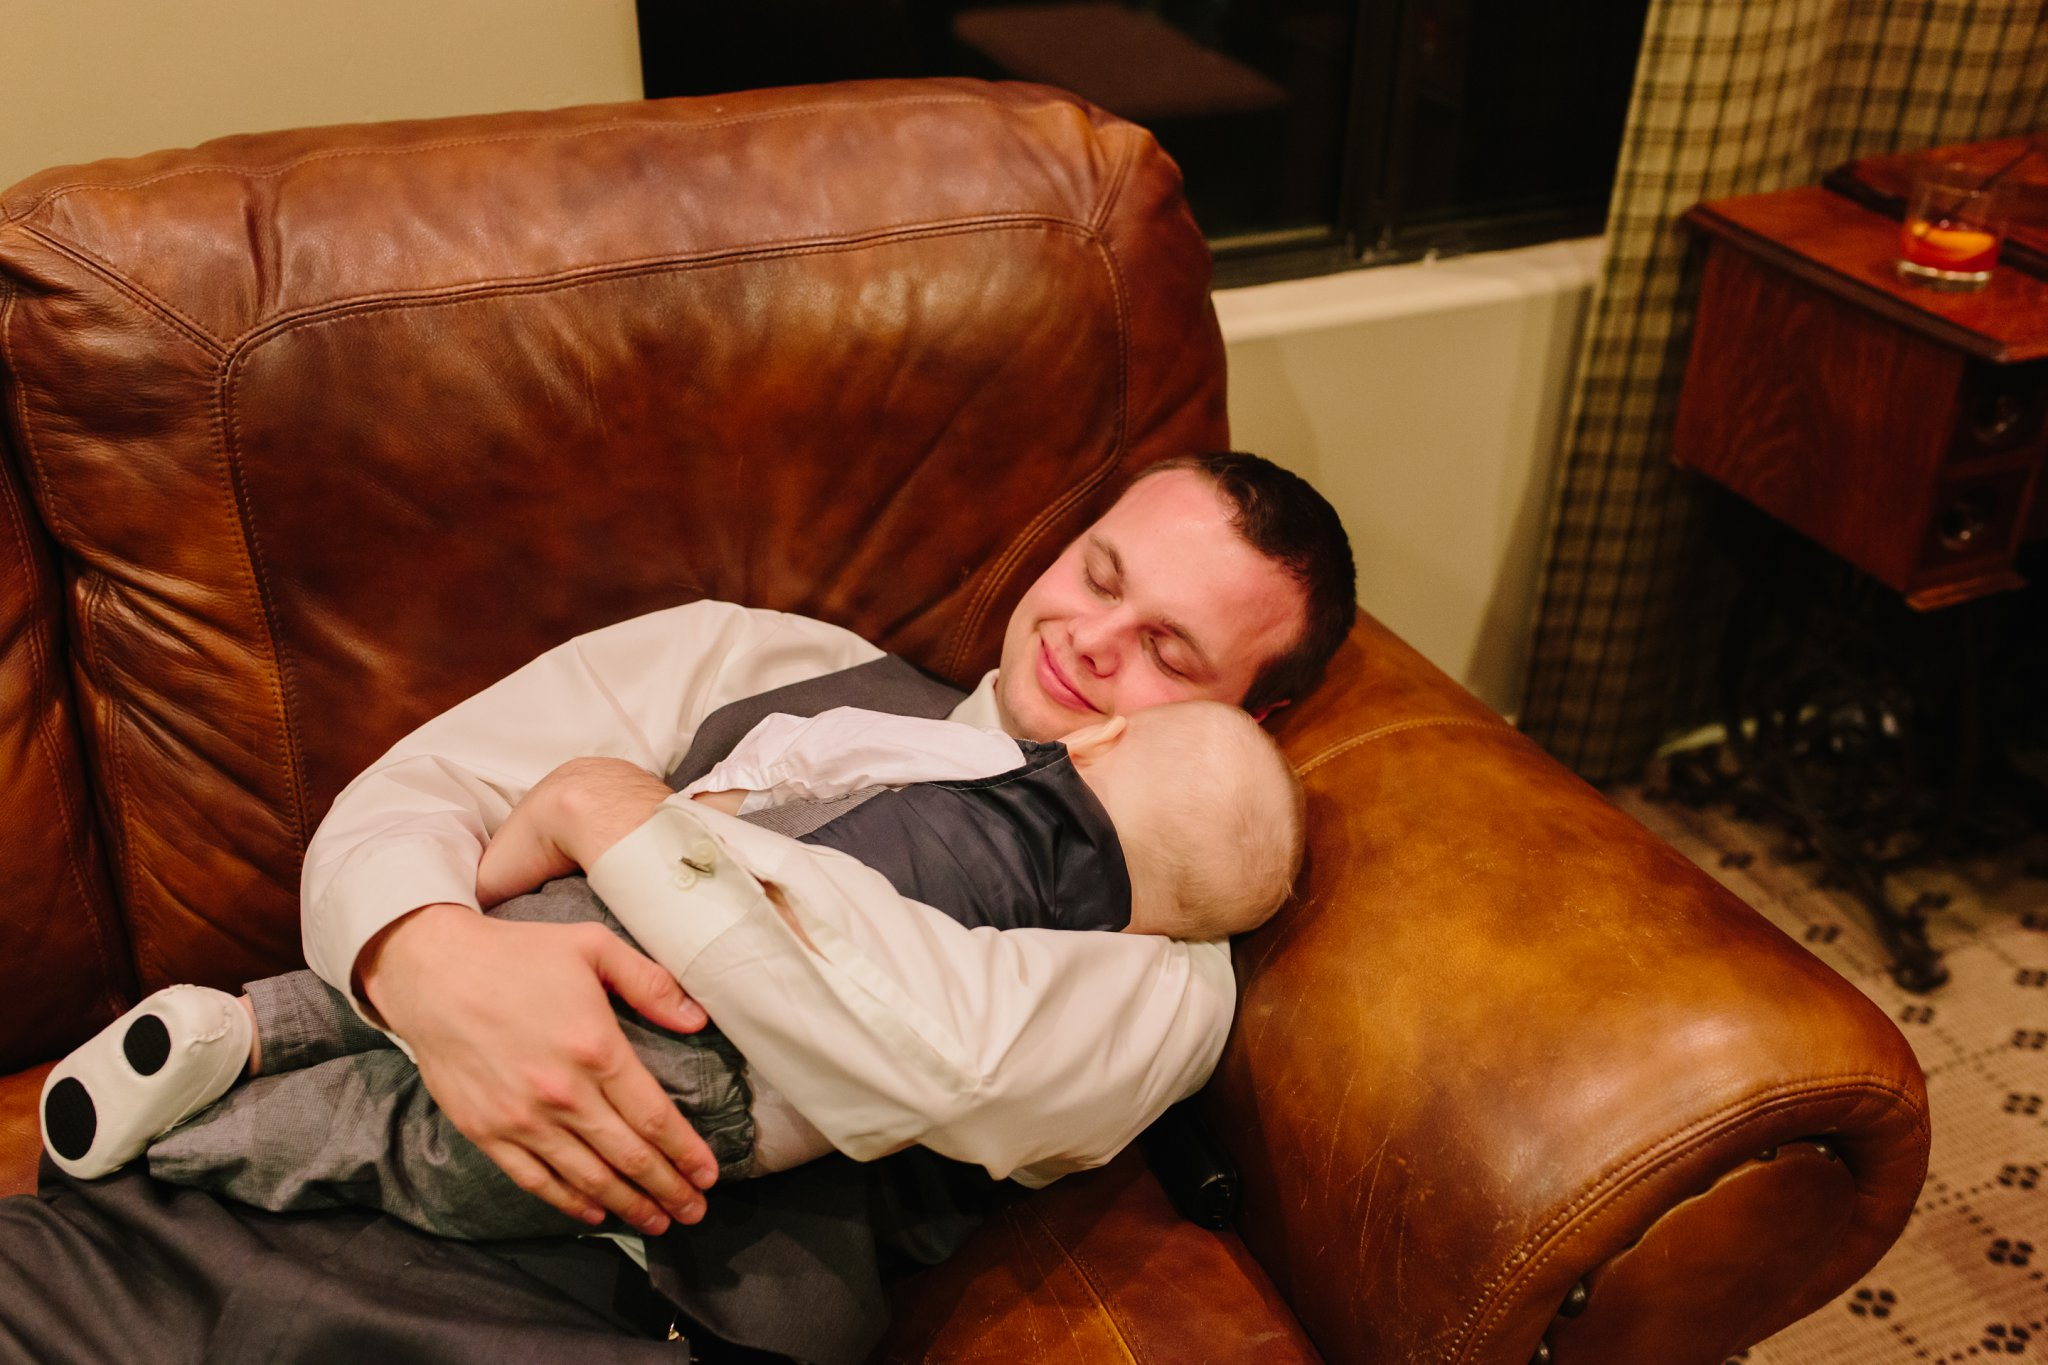 dad and son sleeping after wedding on couch